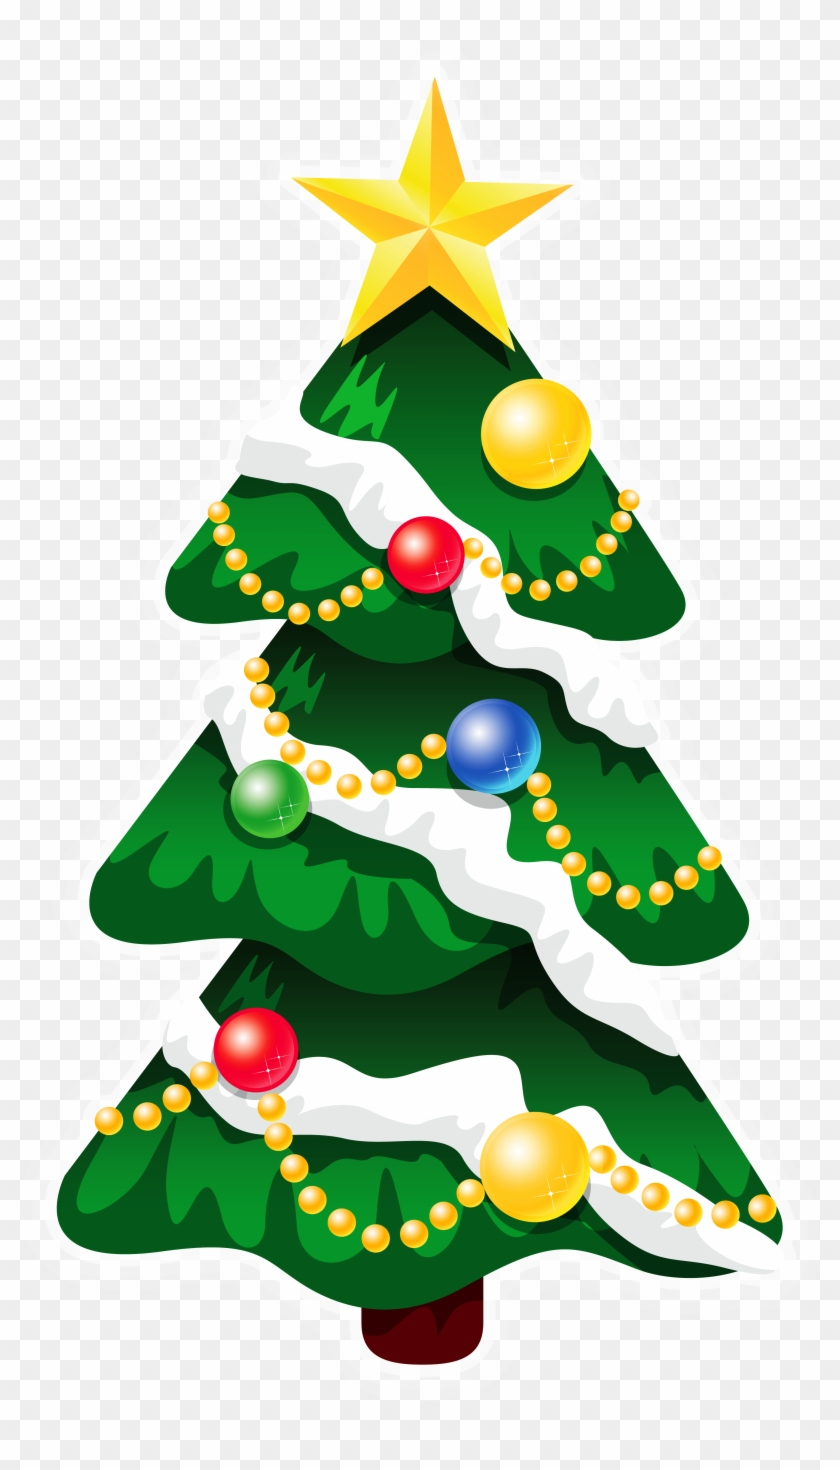 Transparent Snowy Deco Xmas Tree With Star Png Clipart - Christmas Icons #23189